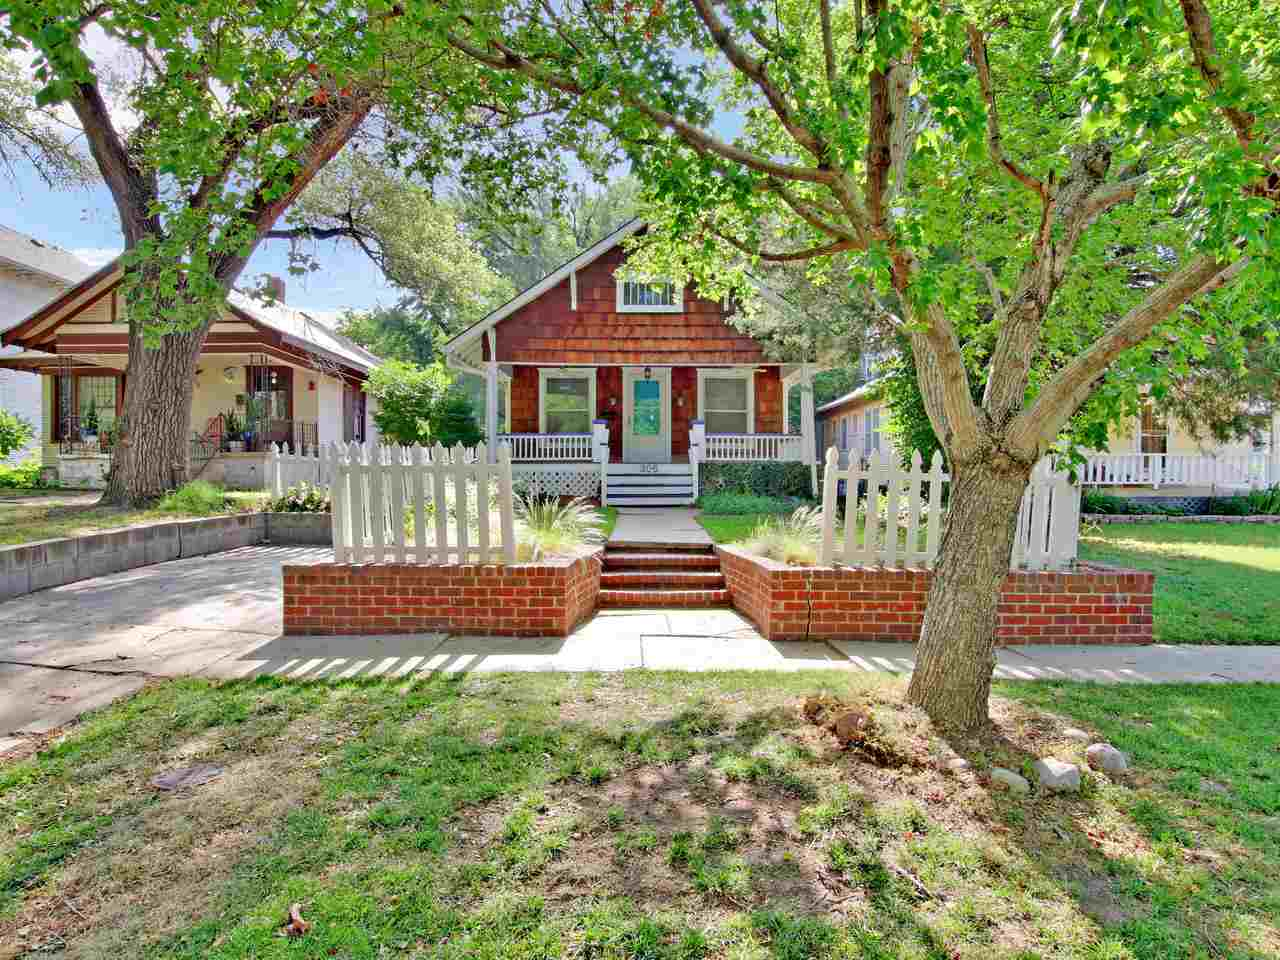 You're going to fall in love with this charming College Hill Bungalow surrounded by a picket fence!